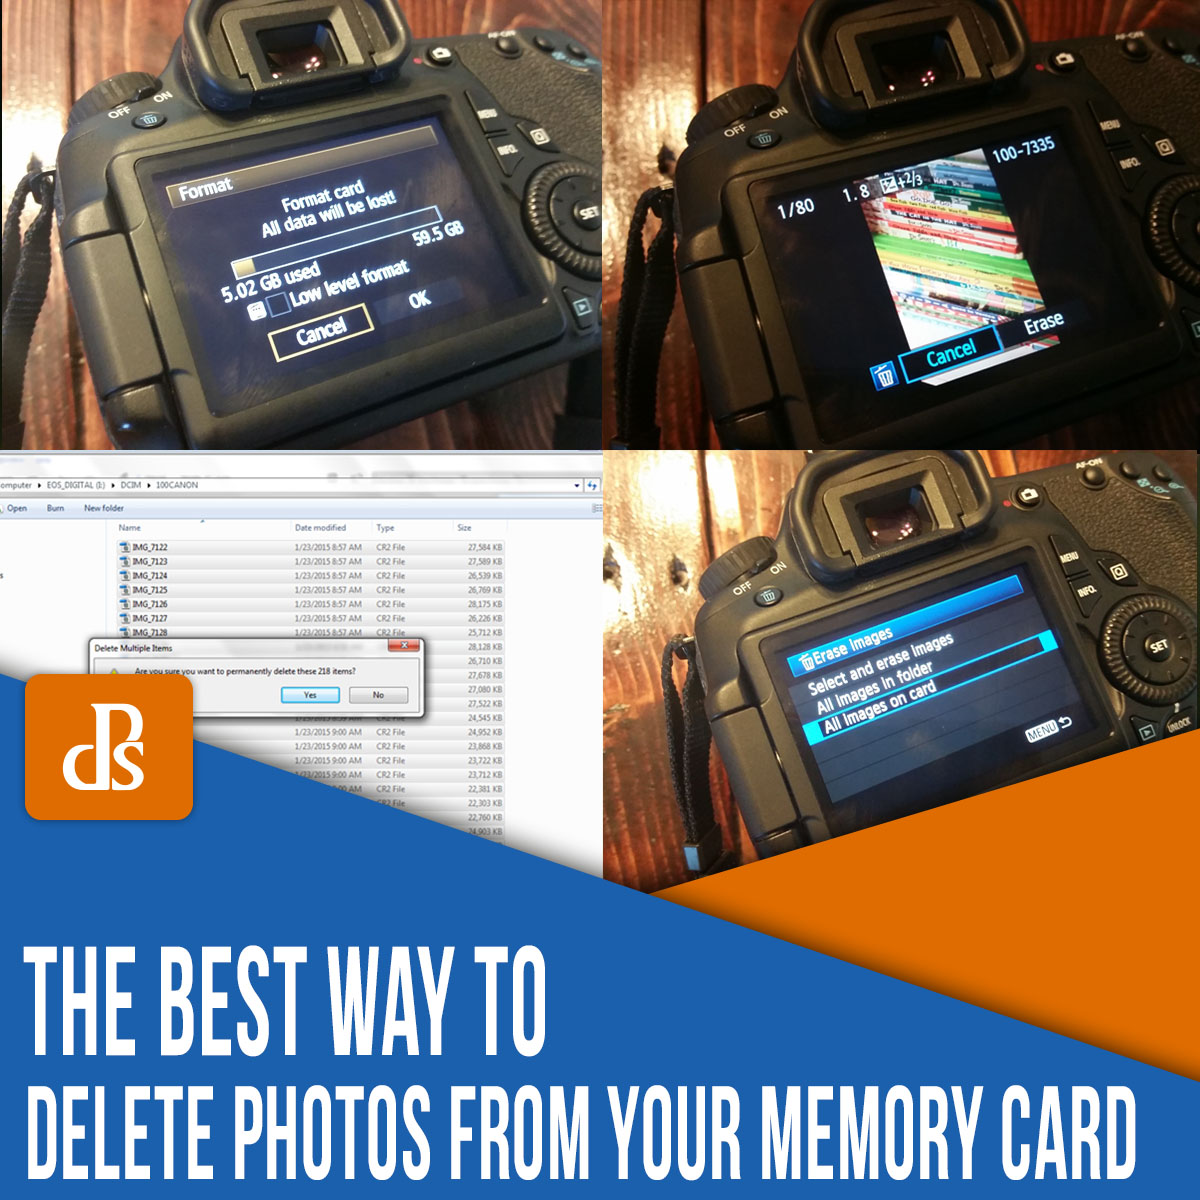 https://i1.wp.com/digital-photography-school.com/wp-content/uploads/2021/01/delete-photos-from-memory-card.jpg?resize=1200%2C1200&ssl=1